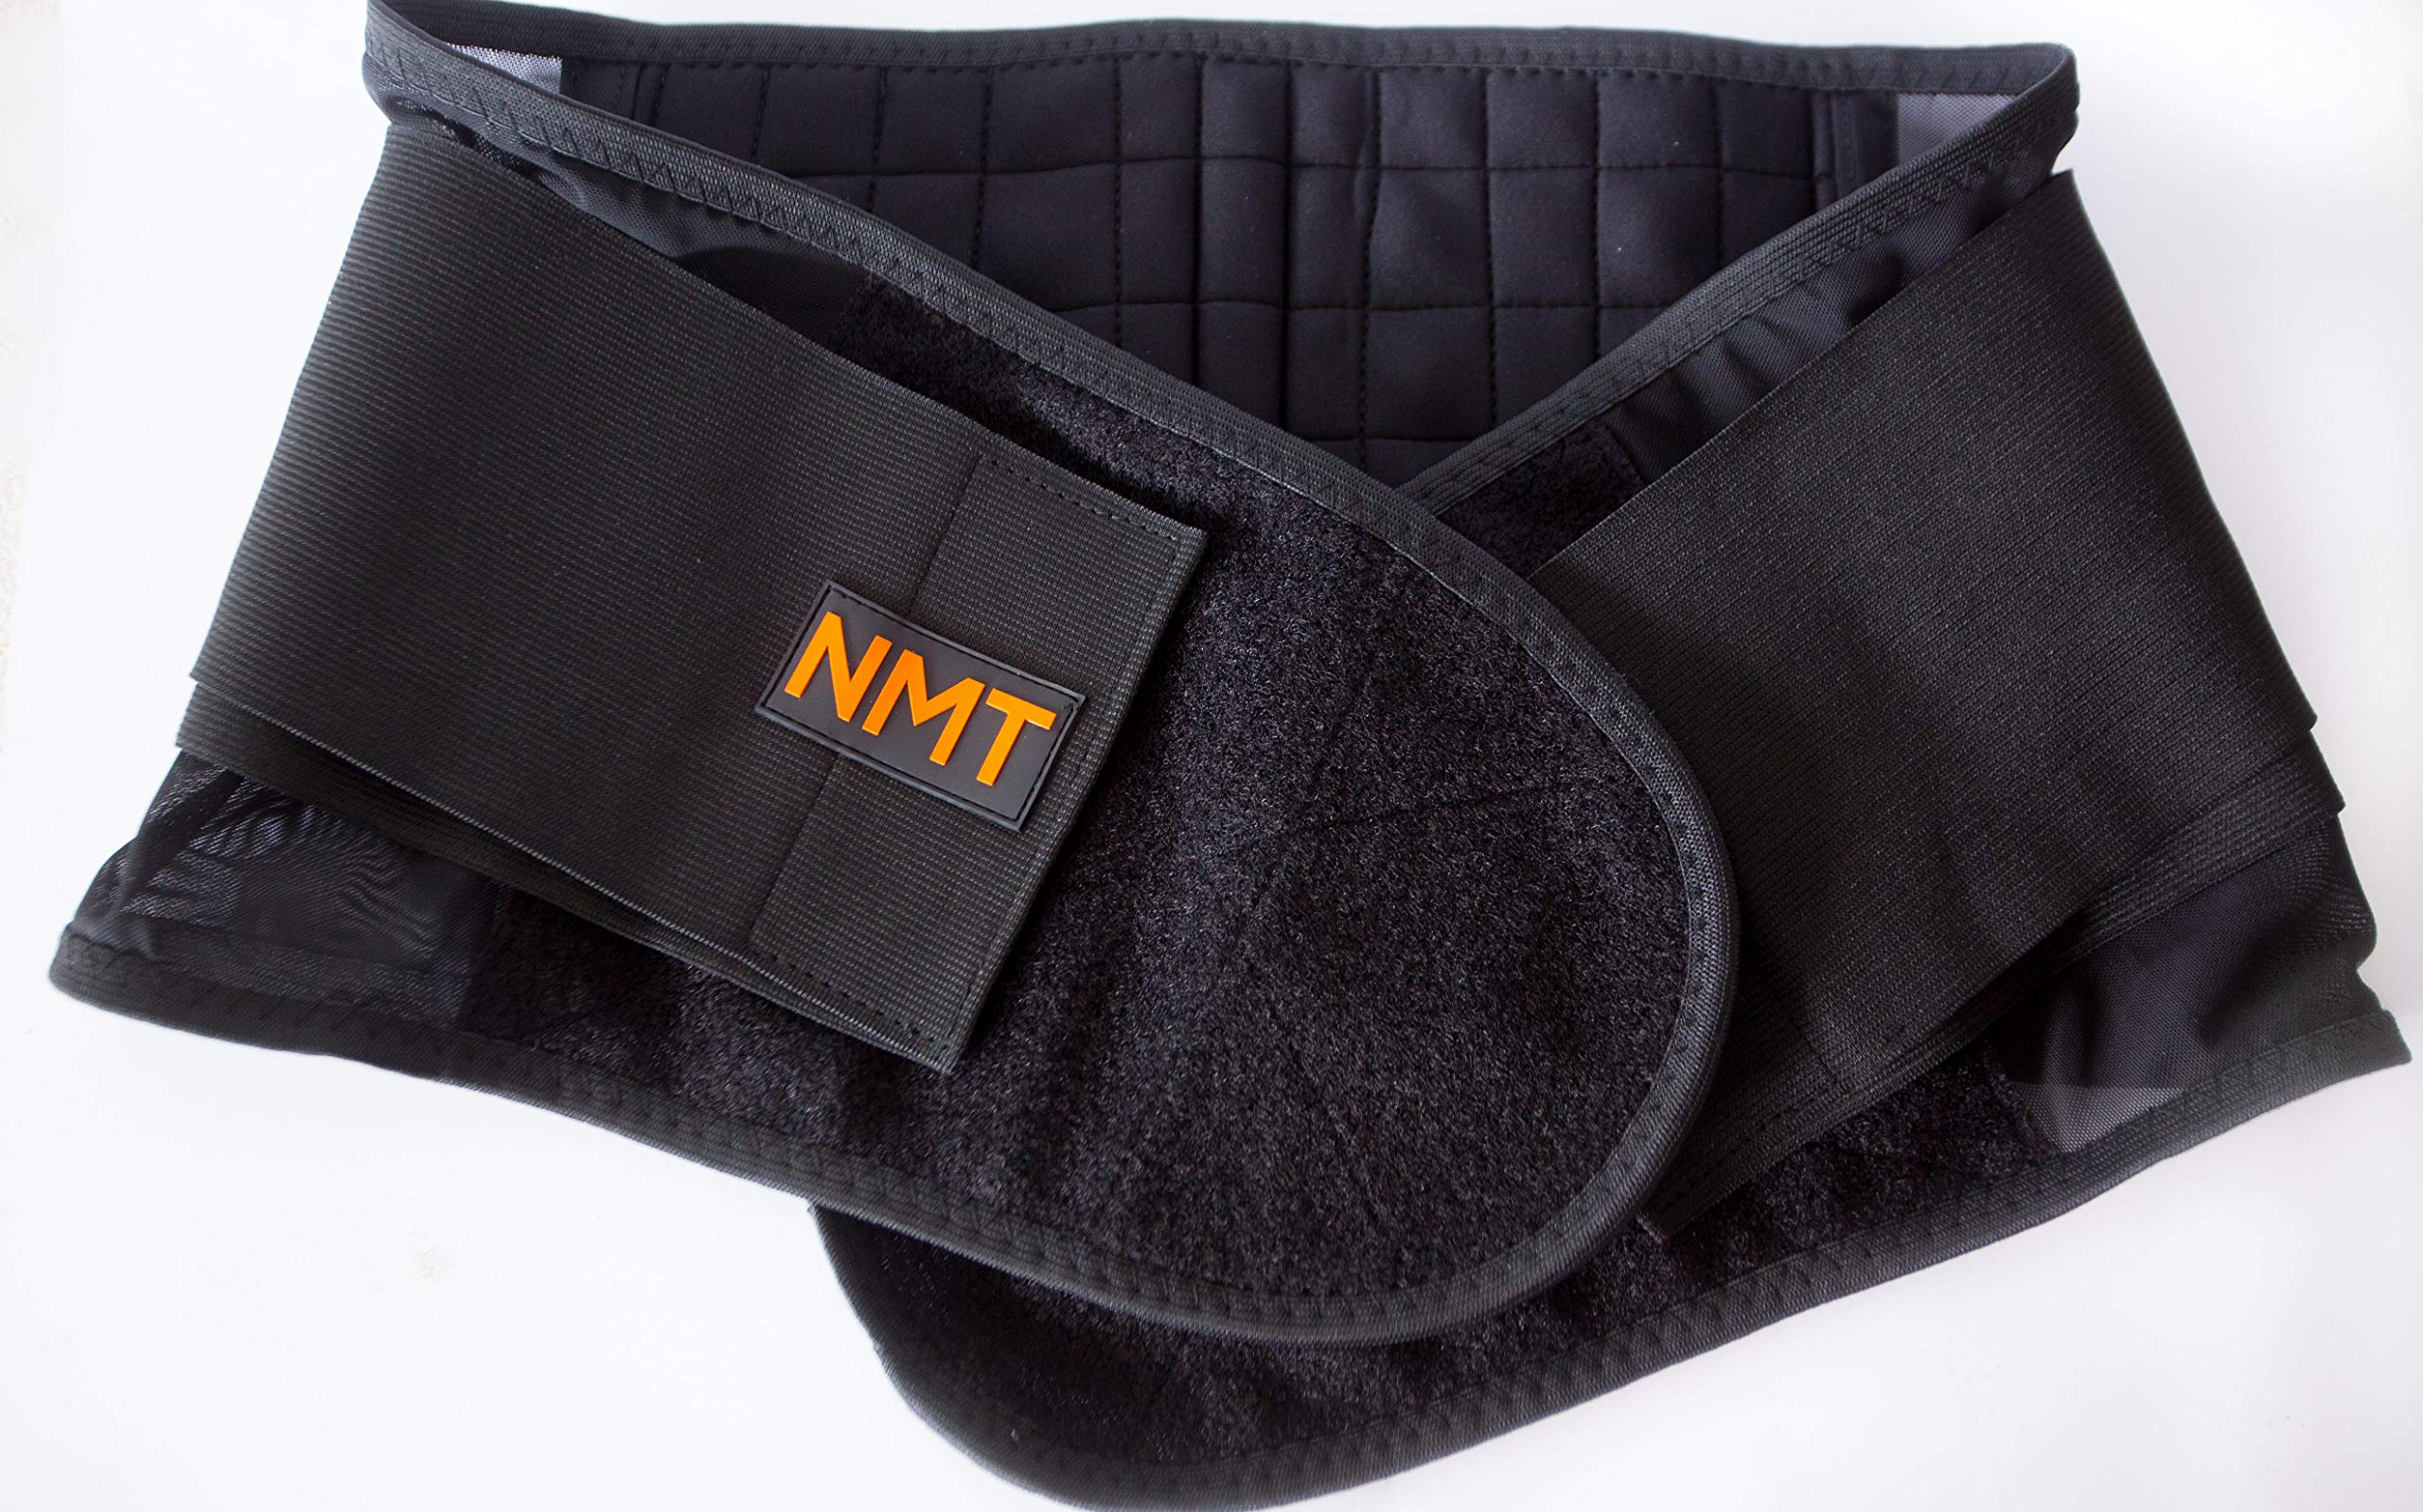 Back Brace by NMT ~ Lumbar Support Black Belt ~ Posture Corrector ~ Arthritis, Pain Relief, Sciatica, Scoliosis ~ Physical Therapy for Women-Men ~ 4 Adjustable Sizes-'XL' Fits Waist 40-45'' (102-115cm) by NeoMedinaTech